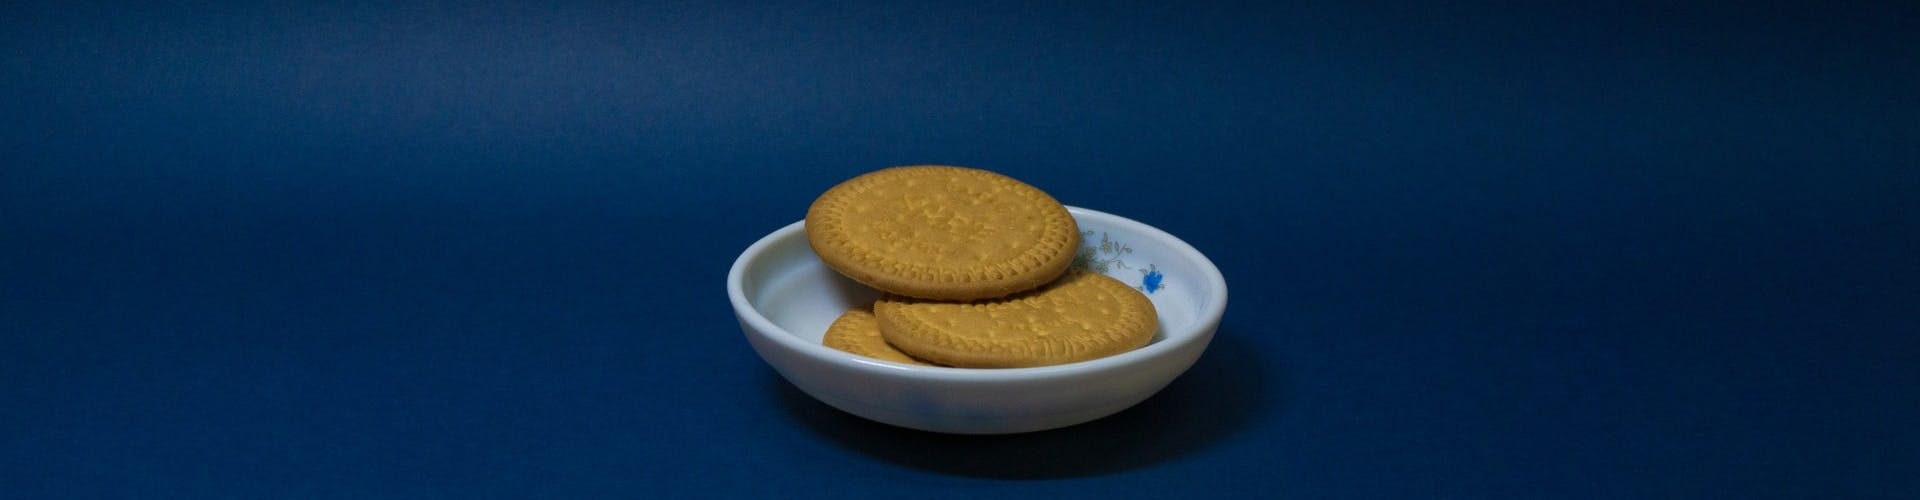 biscuits on a plate in front of a blue background